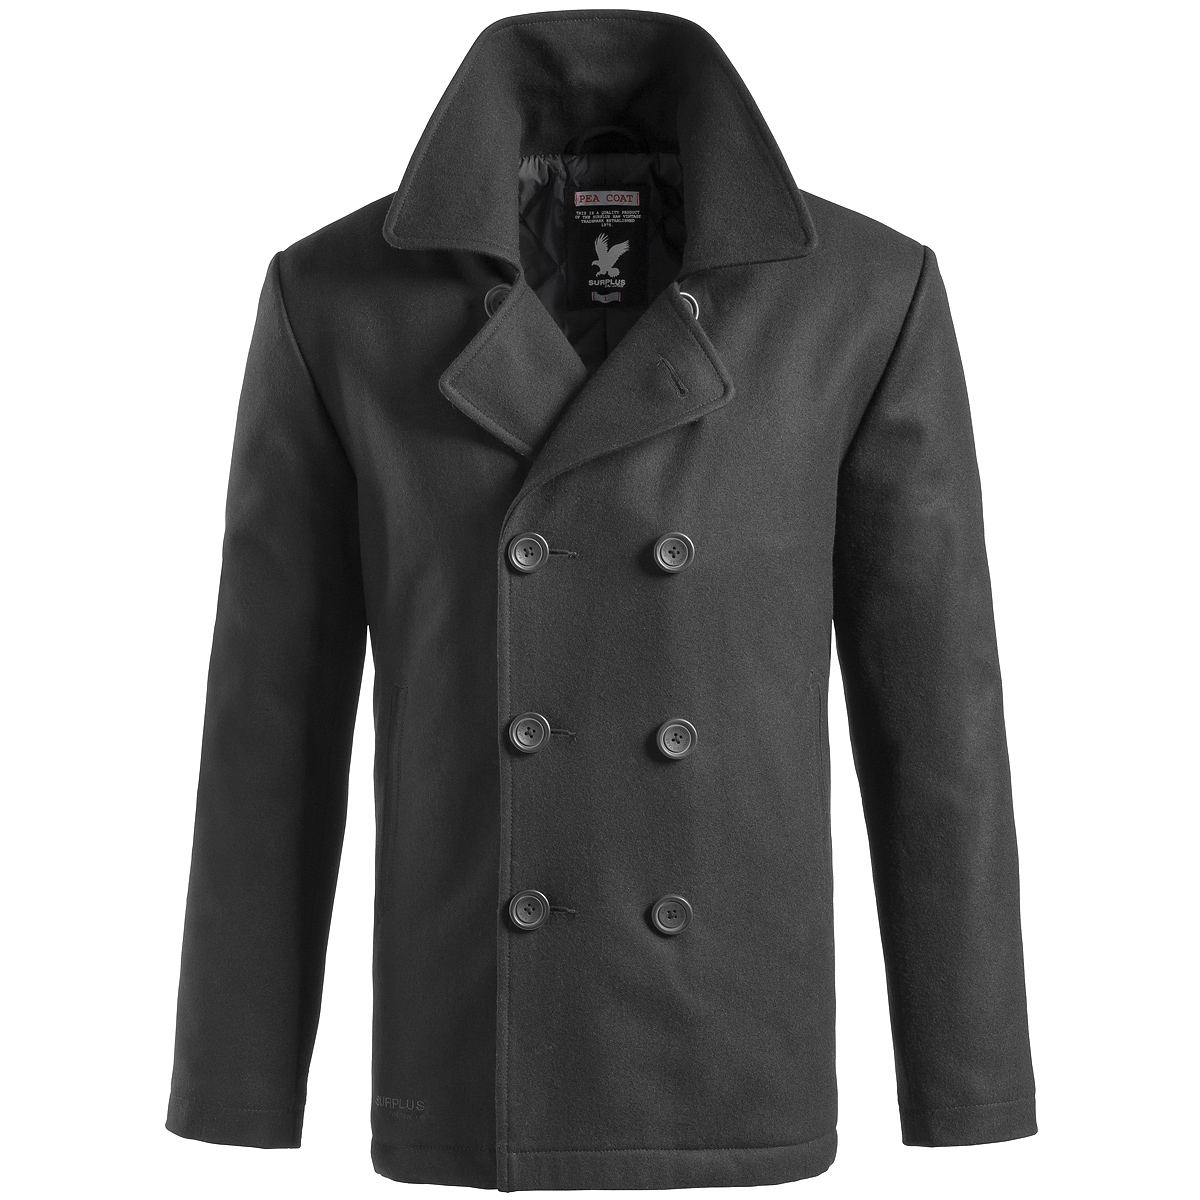 Surplus Pea Coat Black | Coat | Military 1st